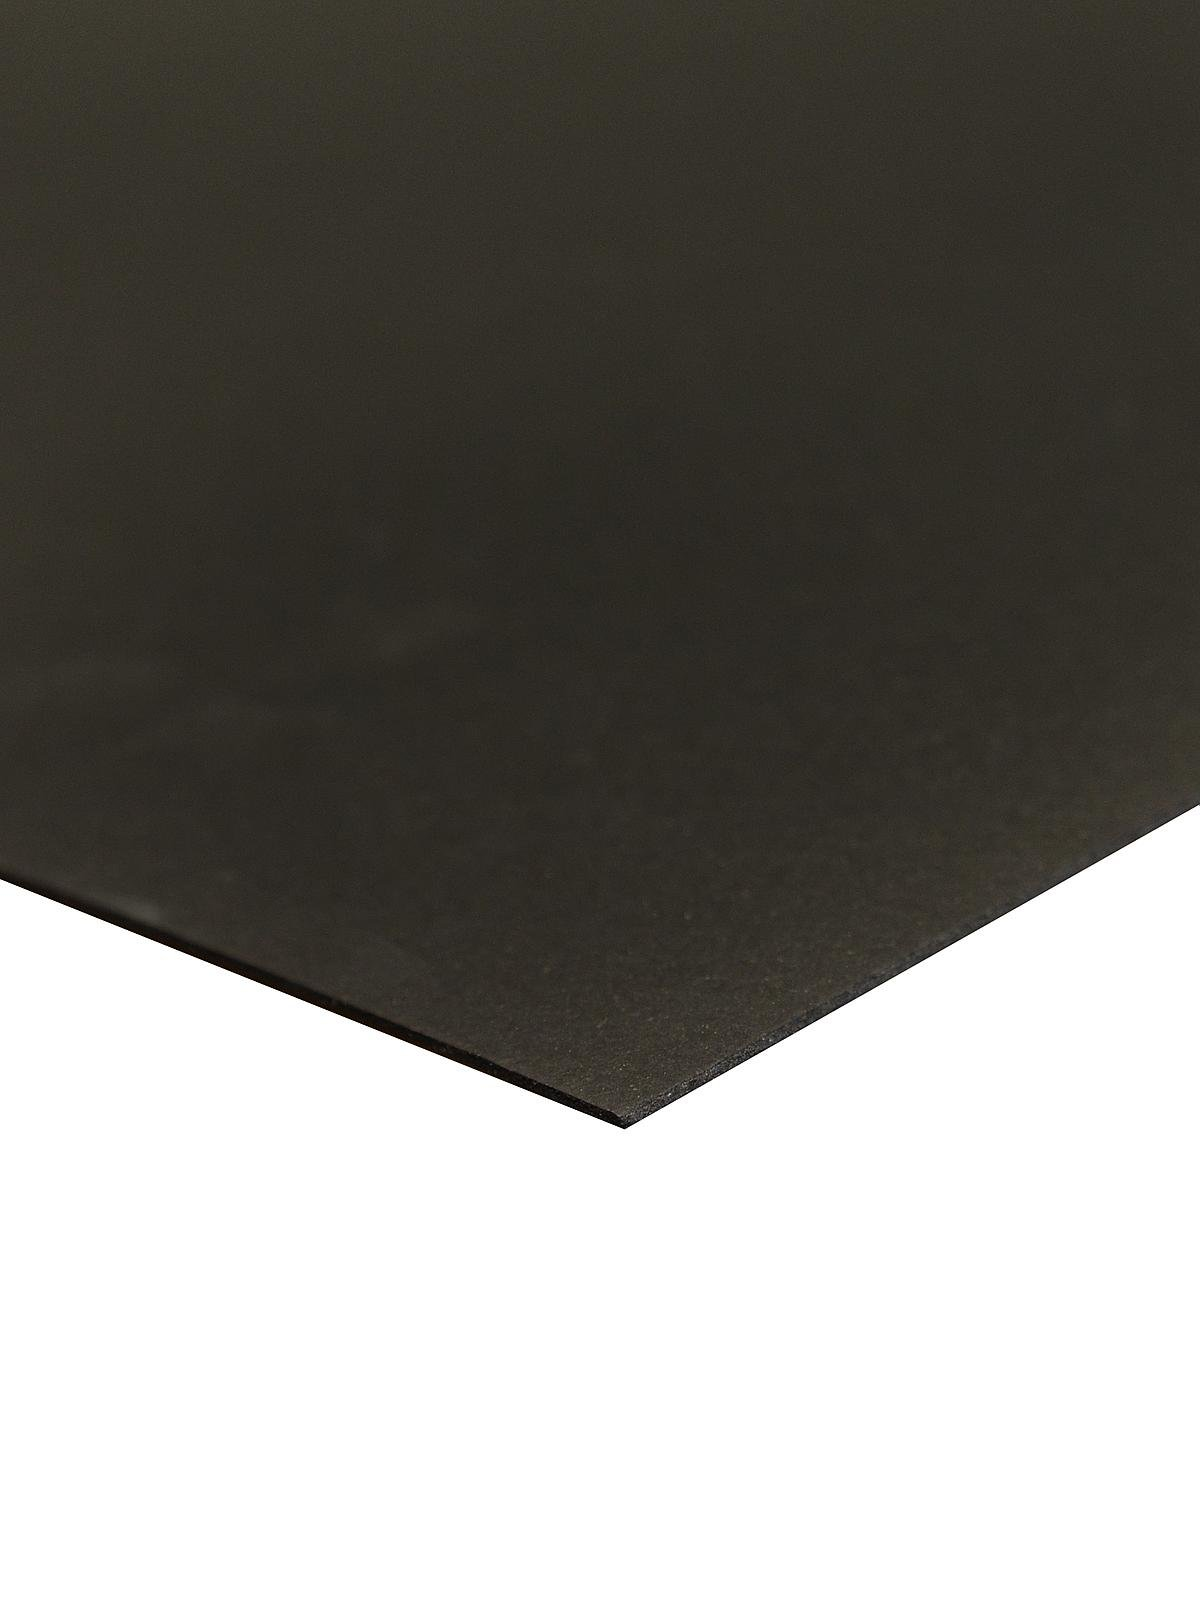 Crescent #6008 Ultra Black Smooth Board 11''x14'' (100 sheets)